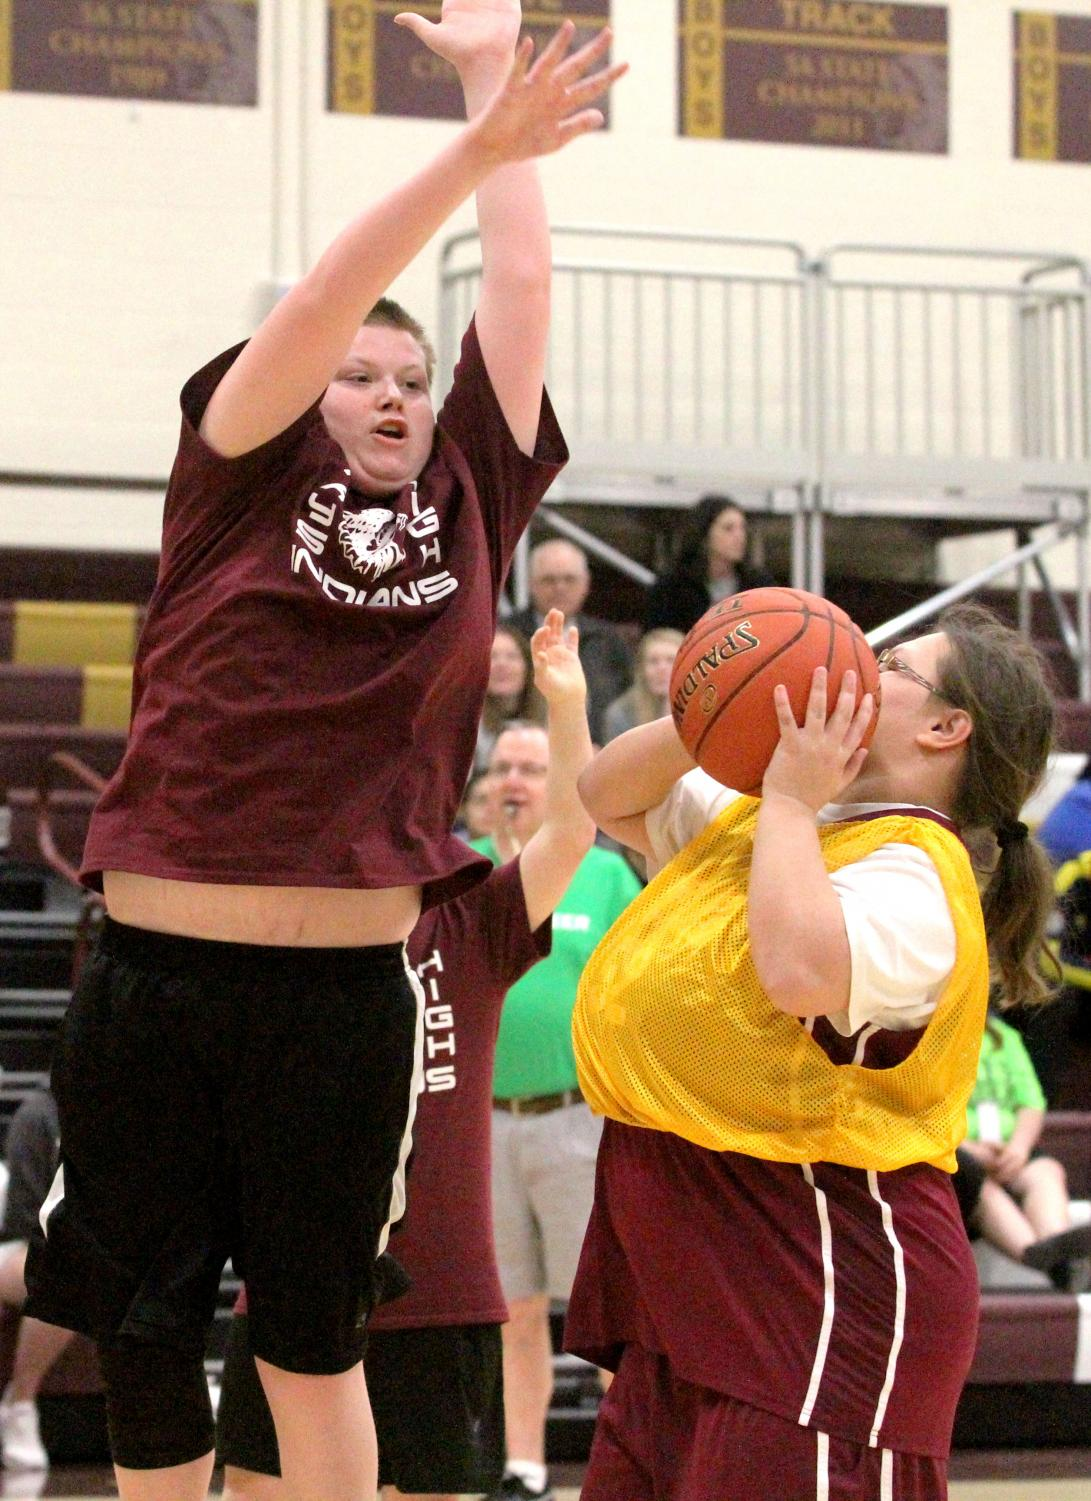 Hays High hosted the annual Special Olympics Kansas basketball tournament on March 22.